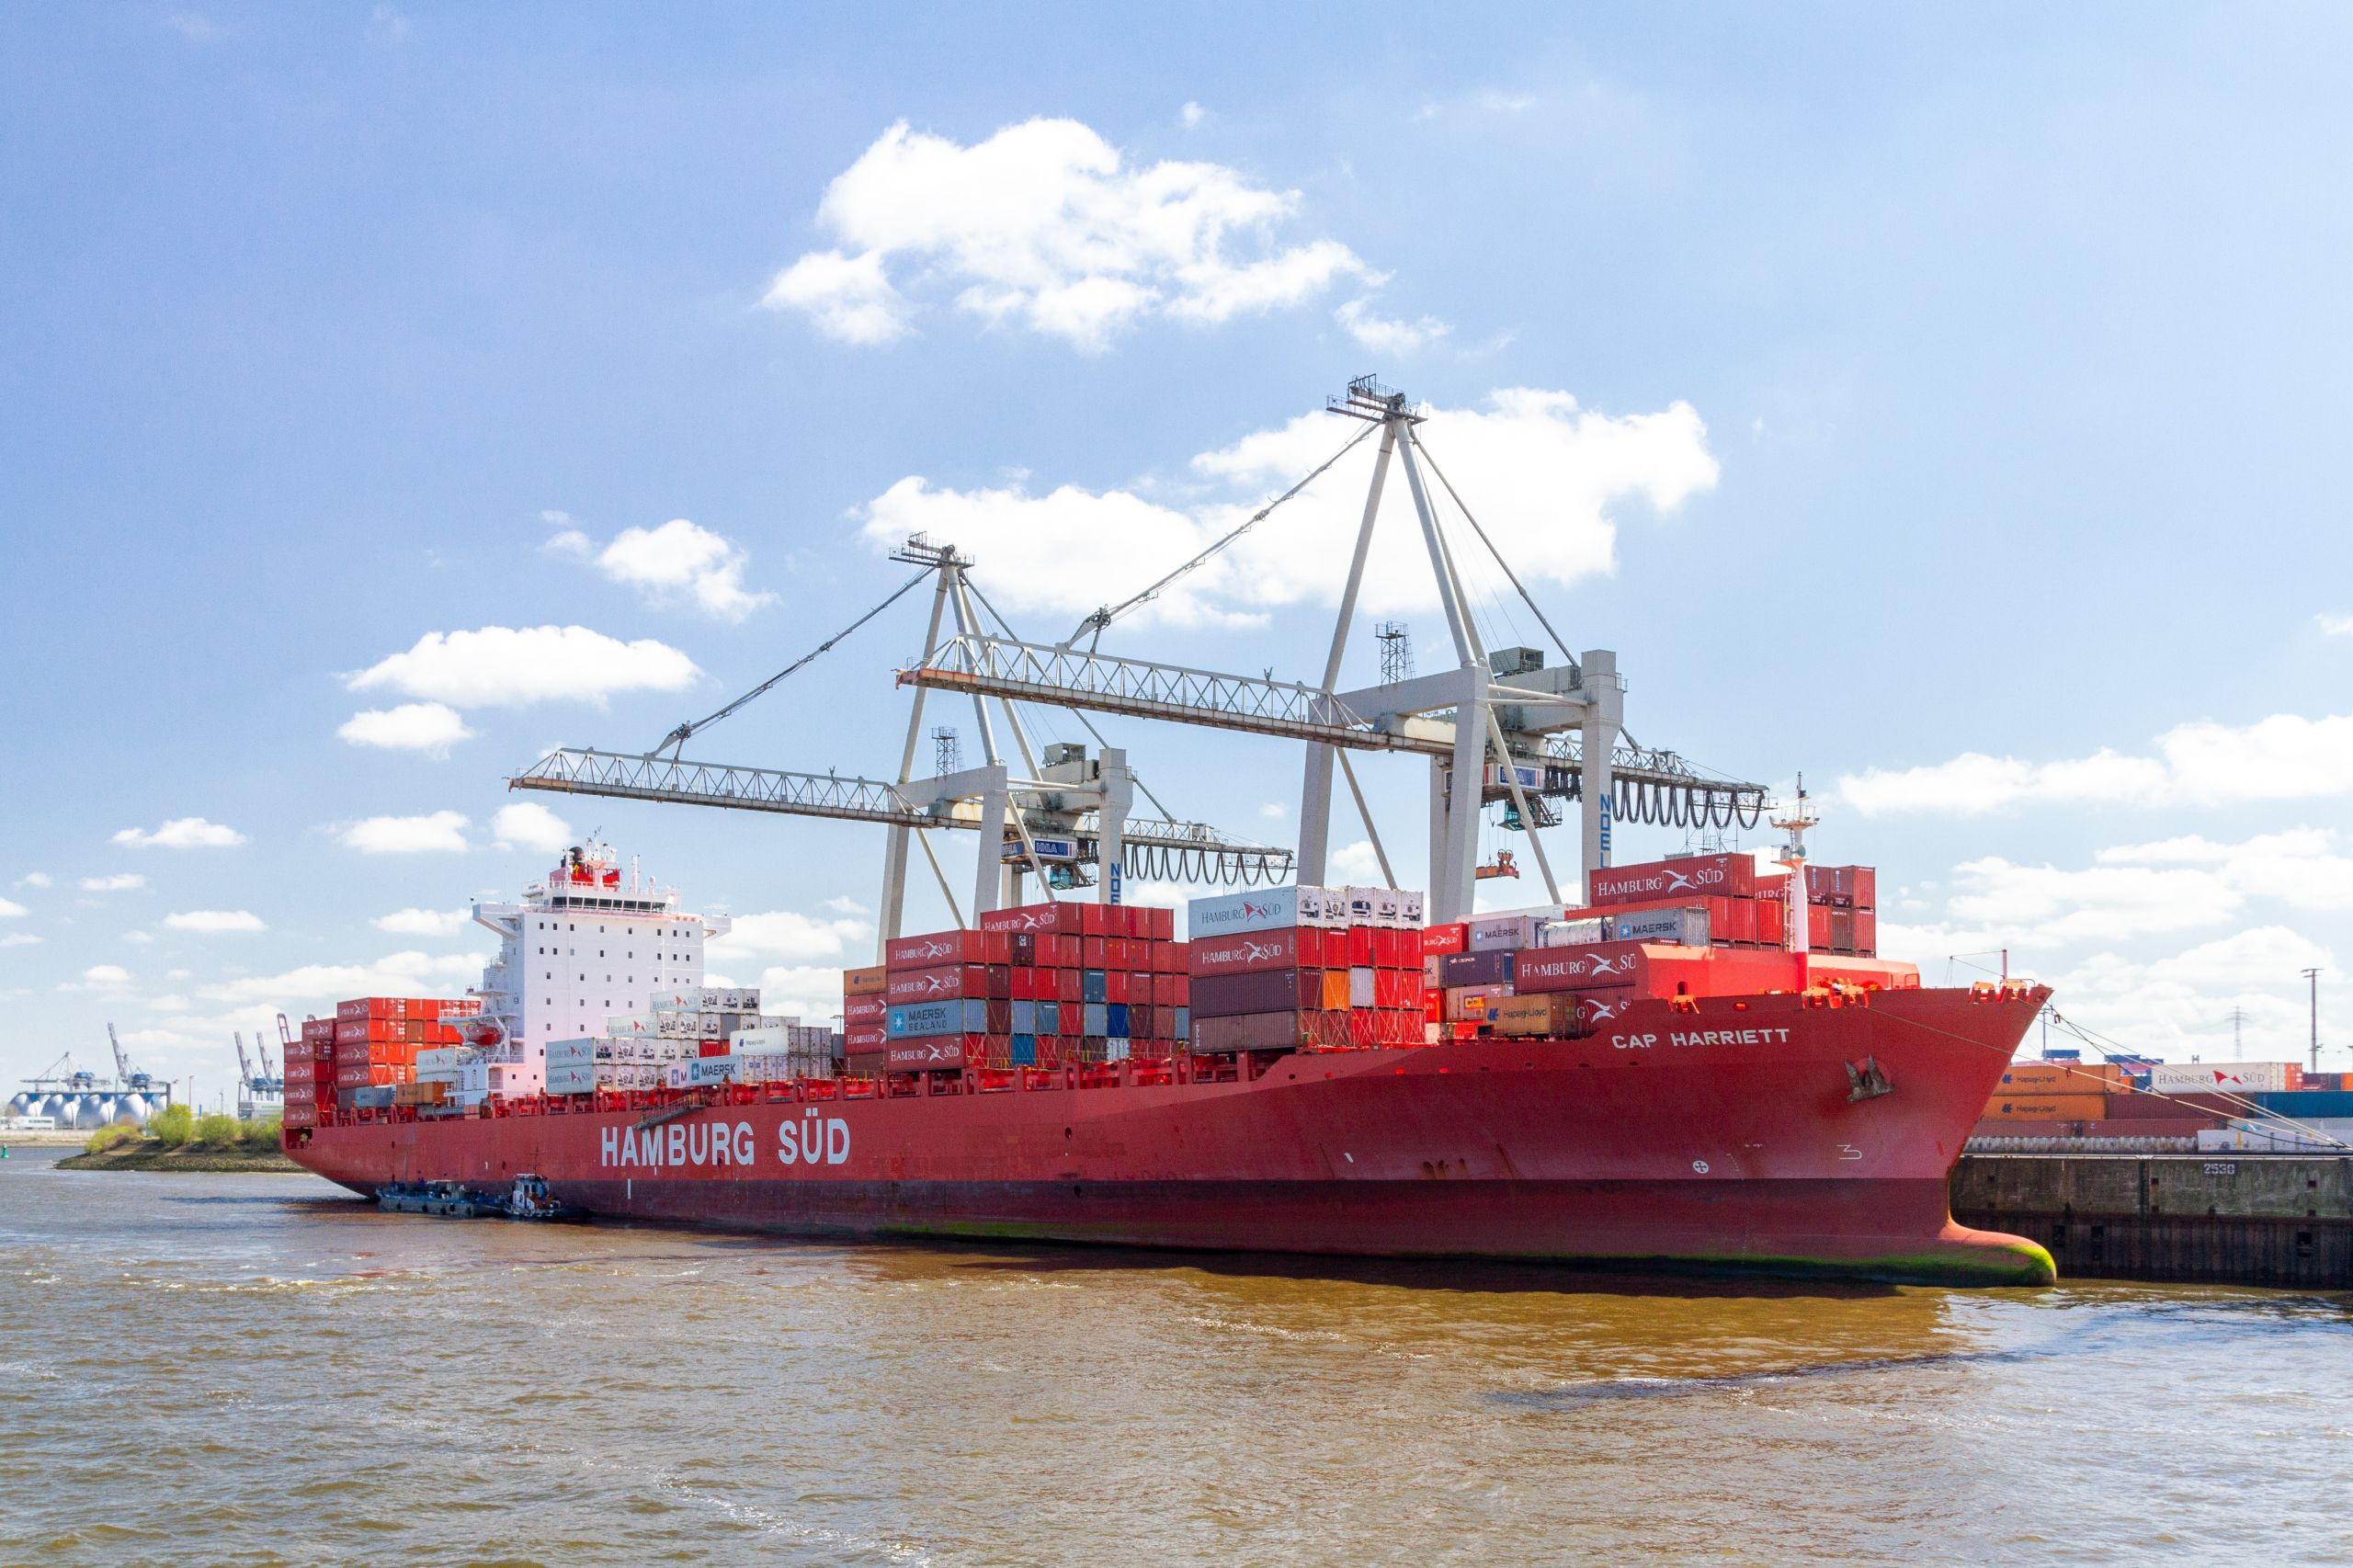 a red coloured shipping vessel